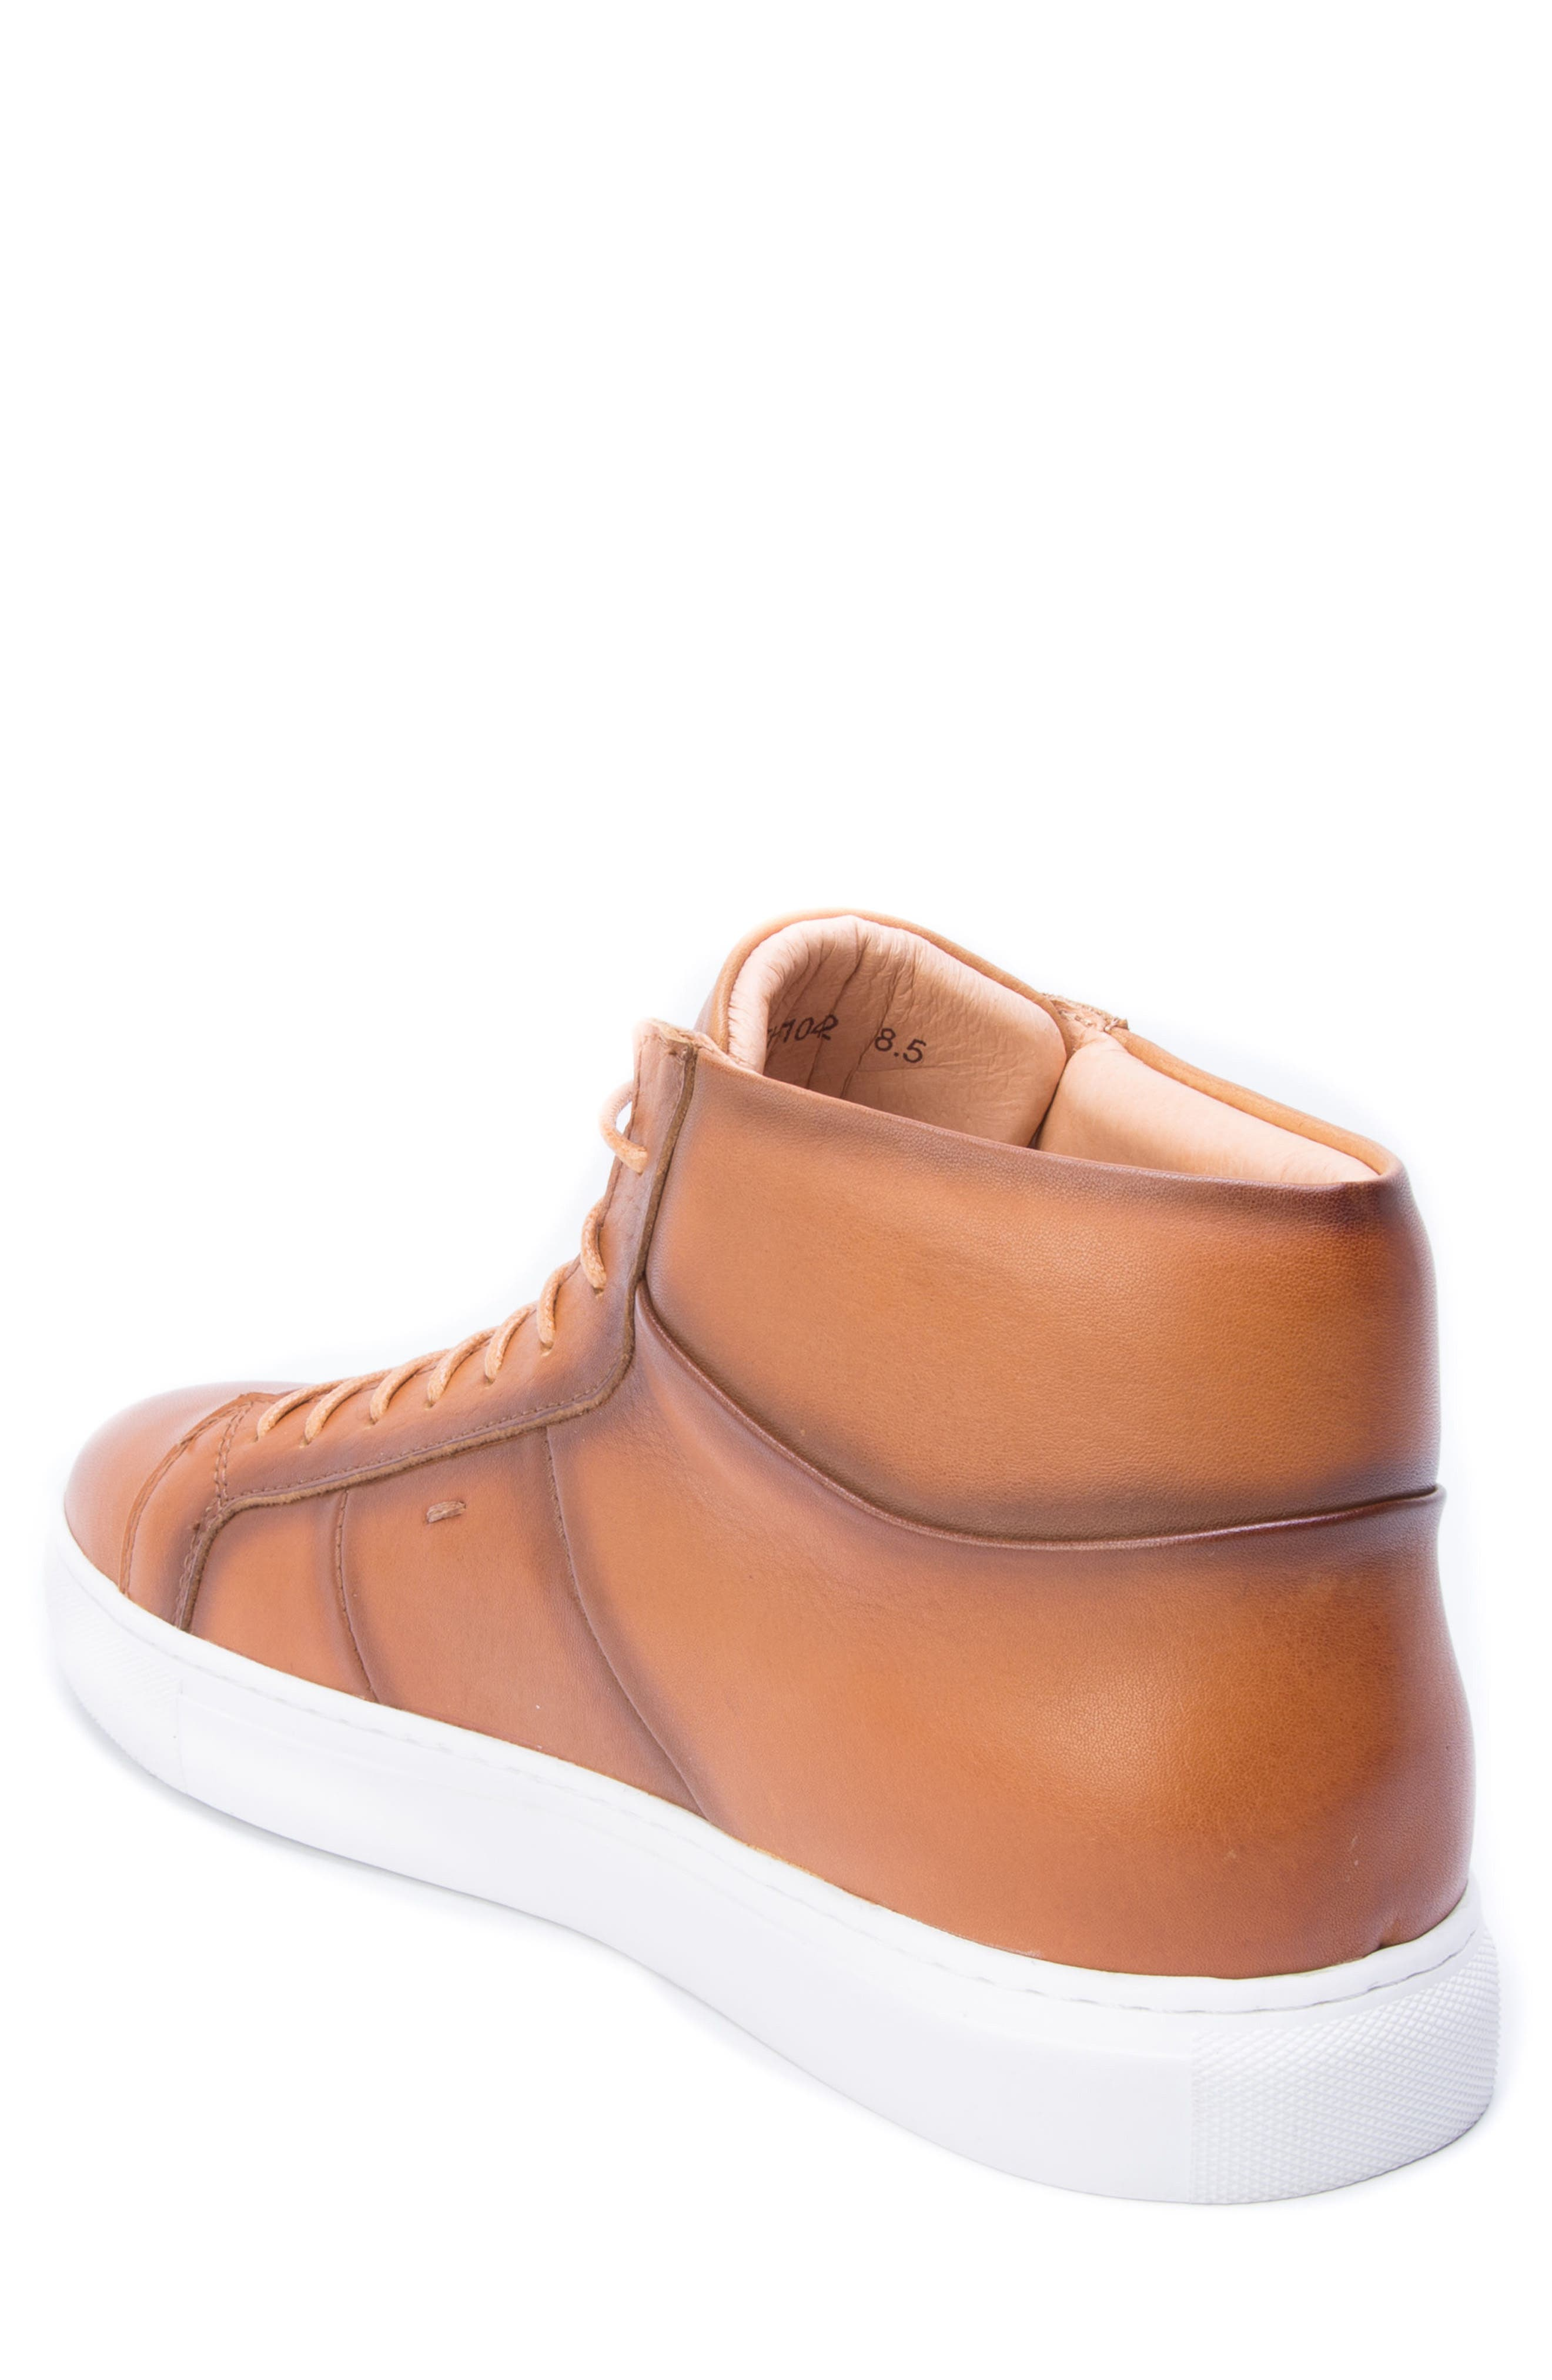 Phaser High Top Sneaker,                             Alternate thumbnail 2, color,                             Cognac Leather